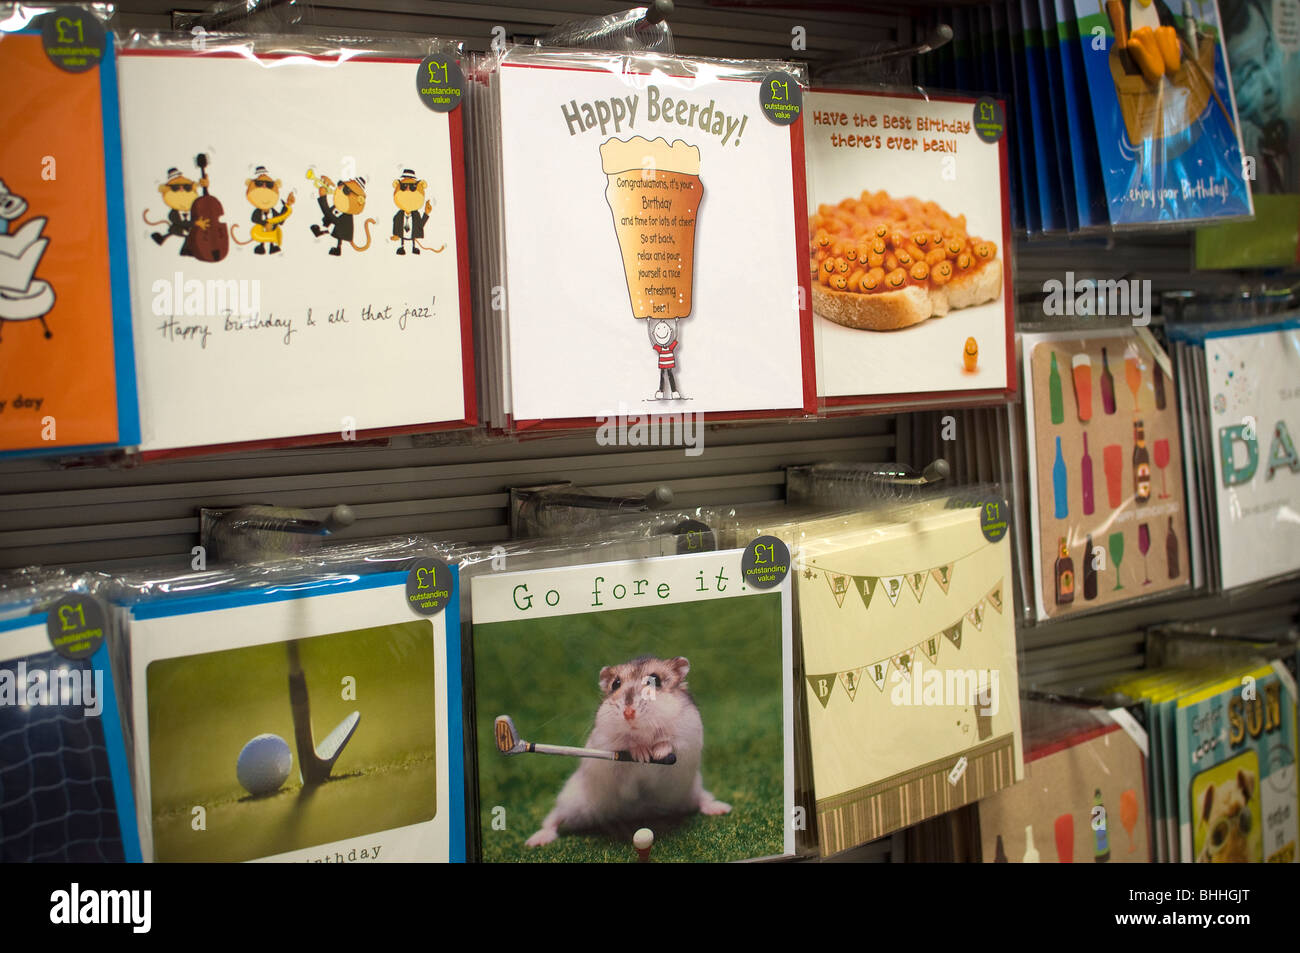 Marks and spencers greeting cards stock photo 28045776 alamy marks and spencers greeting cards kristyandbryce Image collections